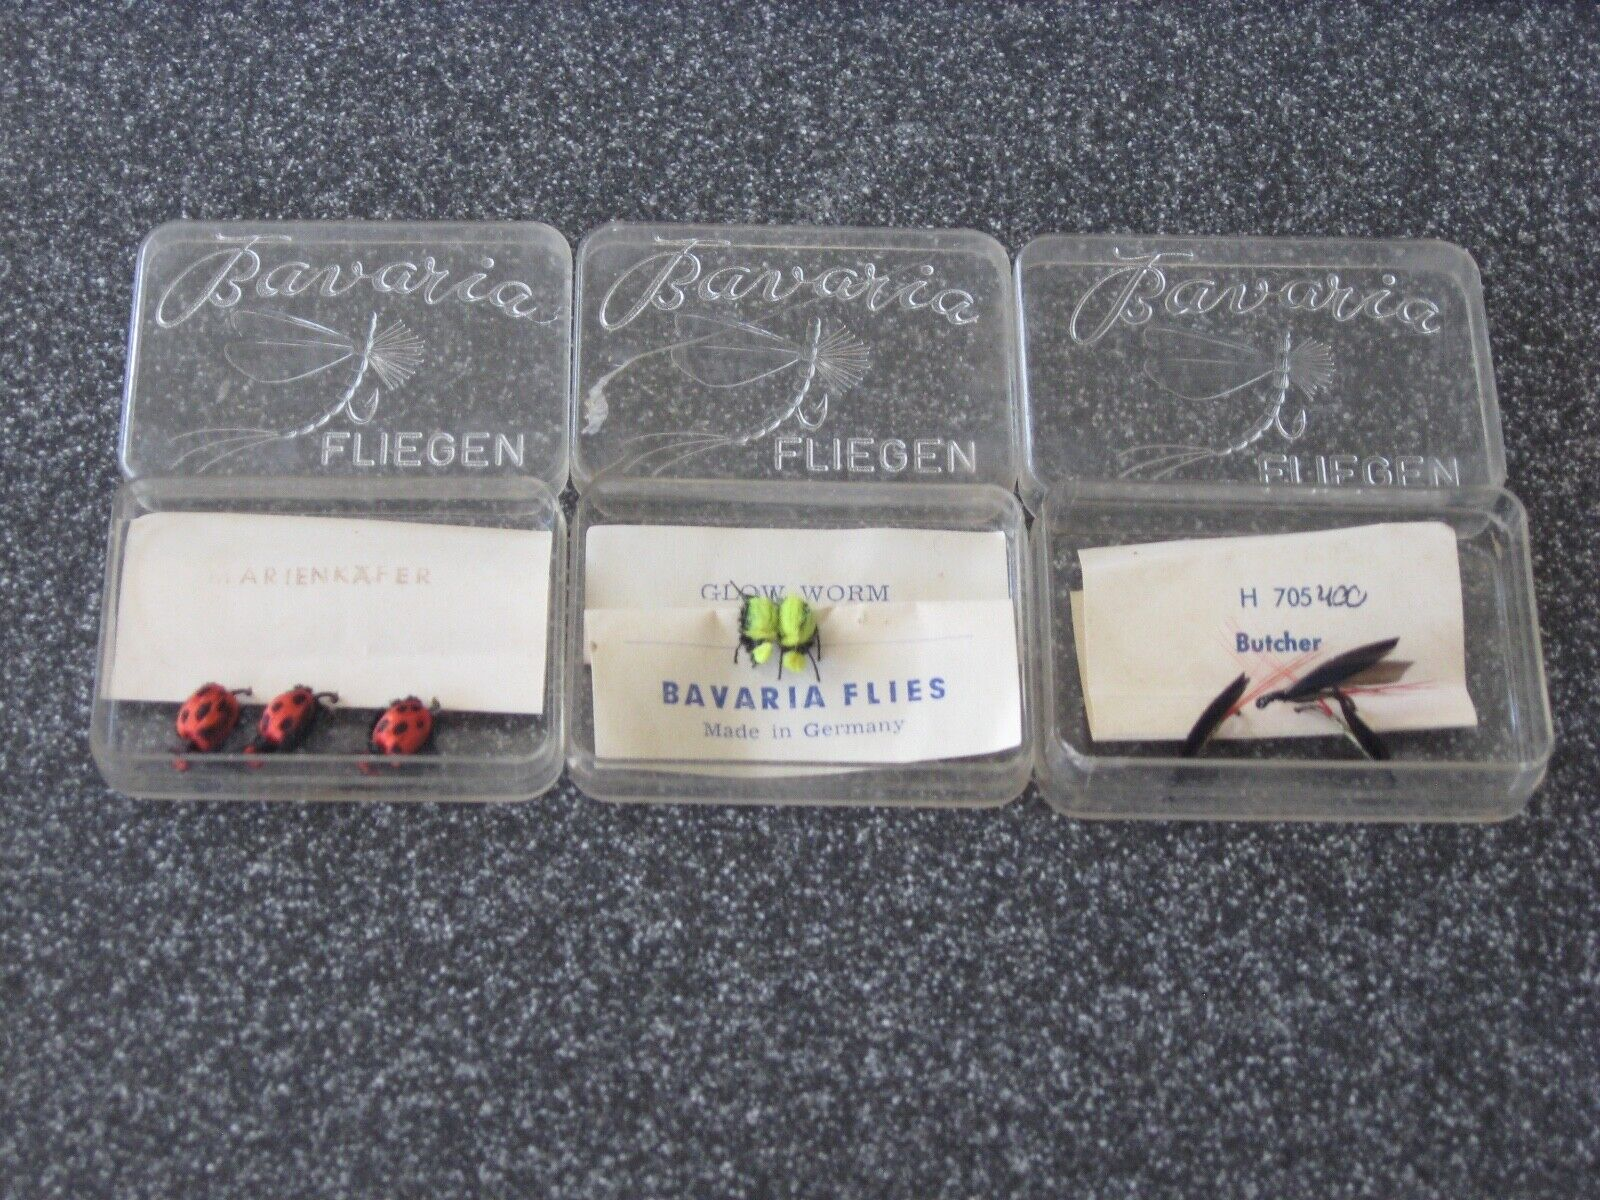 3 ULTRA RARE BAVARIA FLIES SETS MADE IN GERMANY 3 RED ANT 2 GLOW WORM 3 BUTCHER